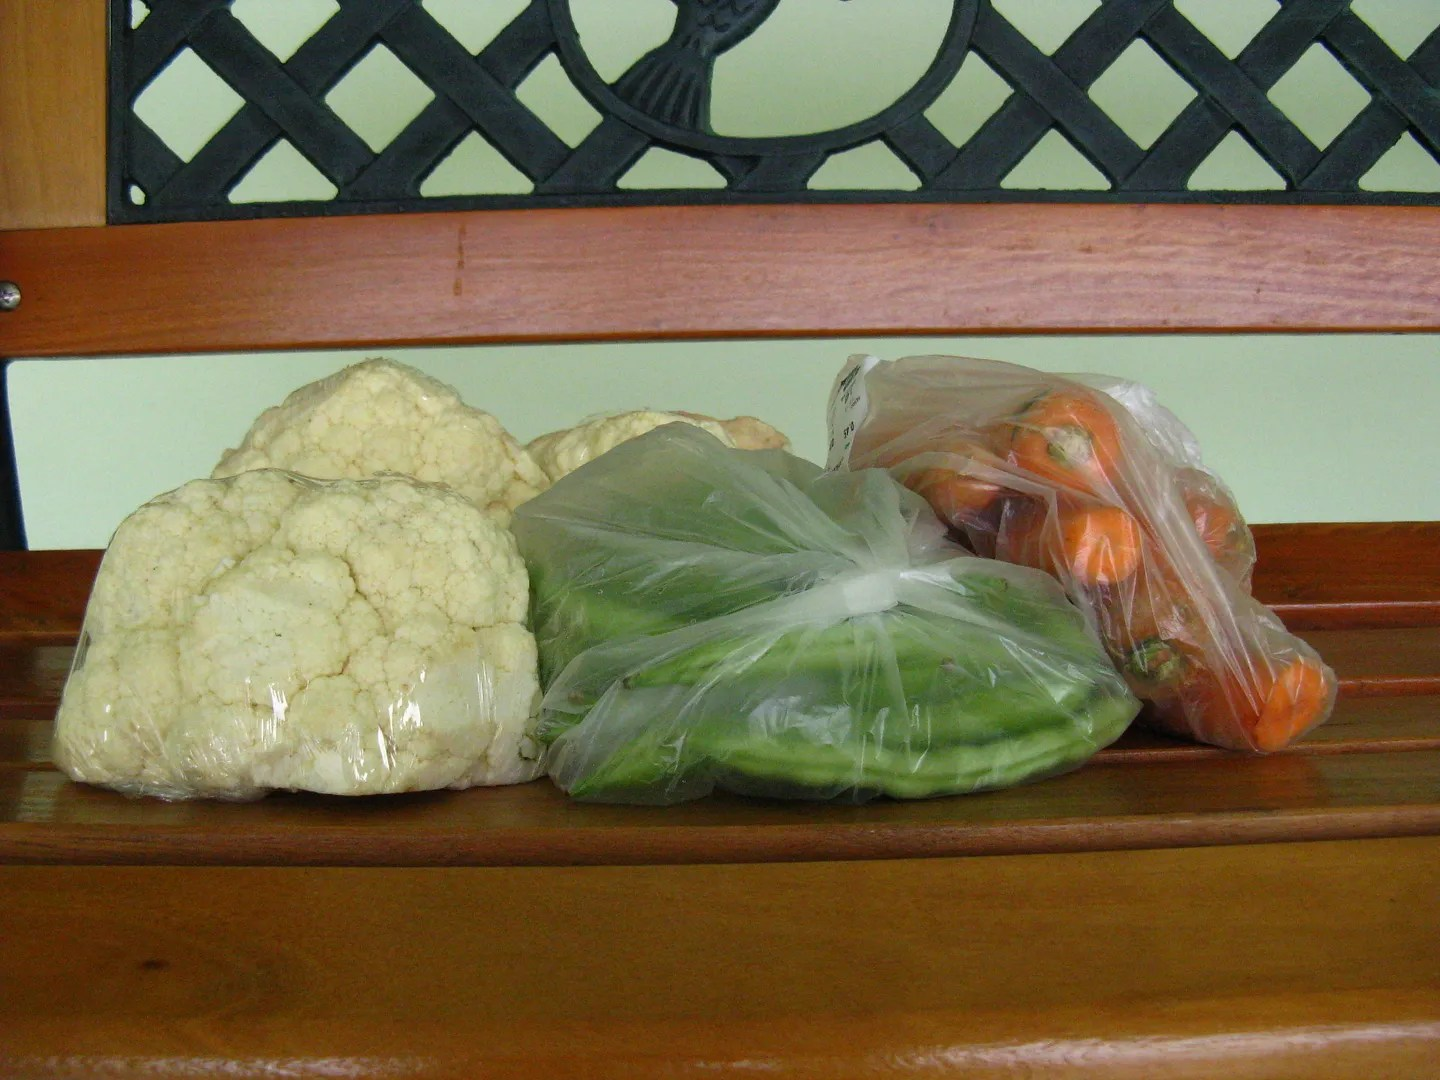 Snapshot of recently purchased fresh vegetables to improve my health.  Doctor said I'm overweight and must lost about nine pounds.  Photo by ©Omar Upegui R.